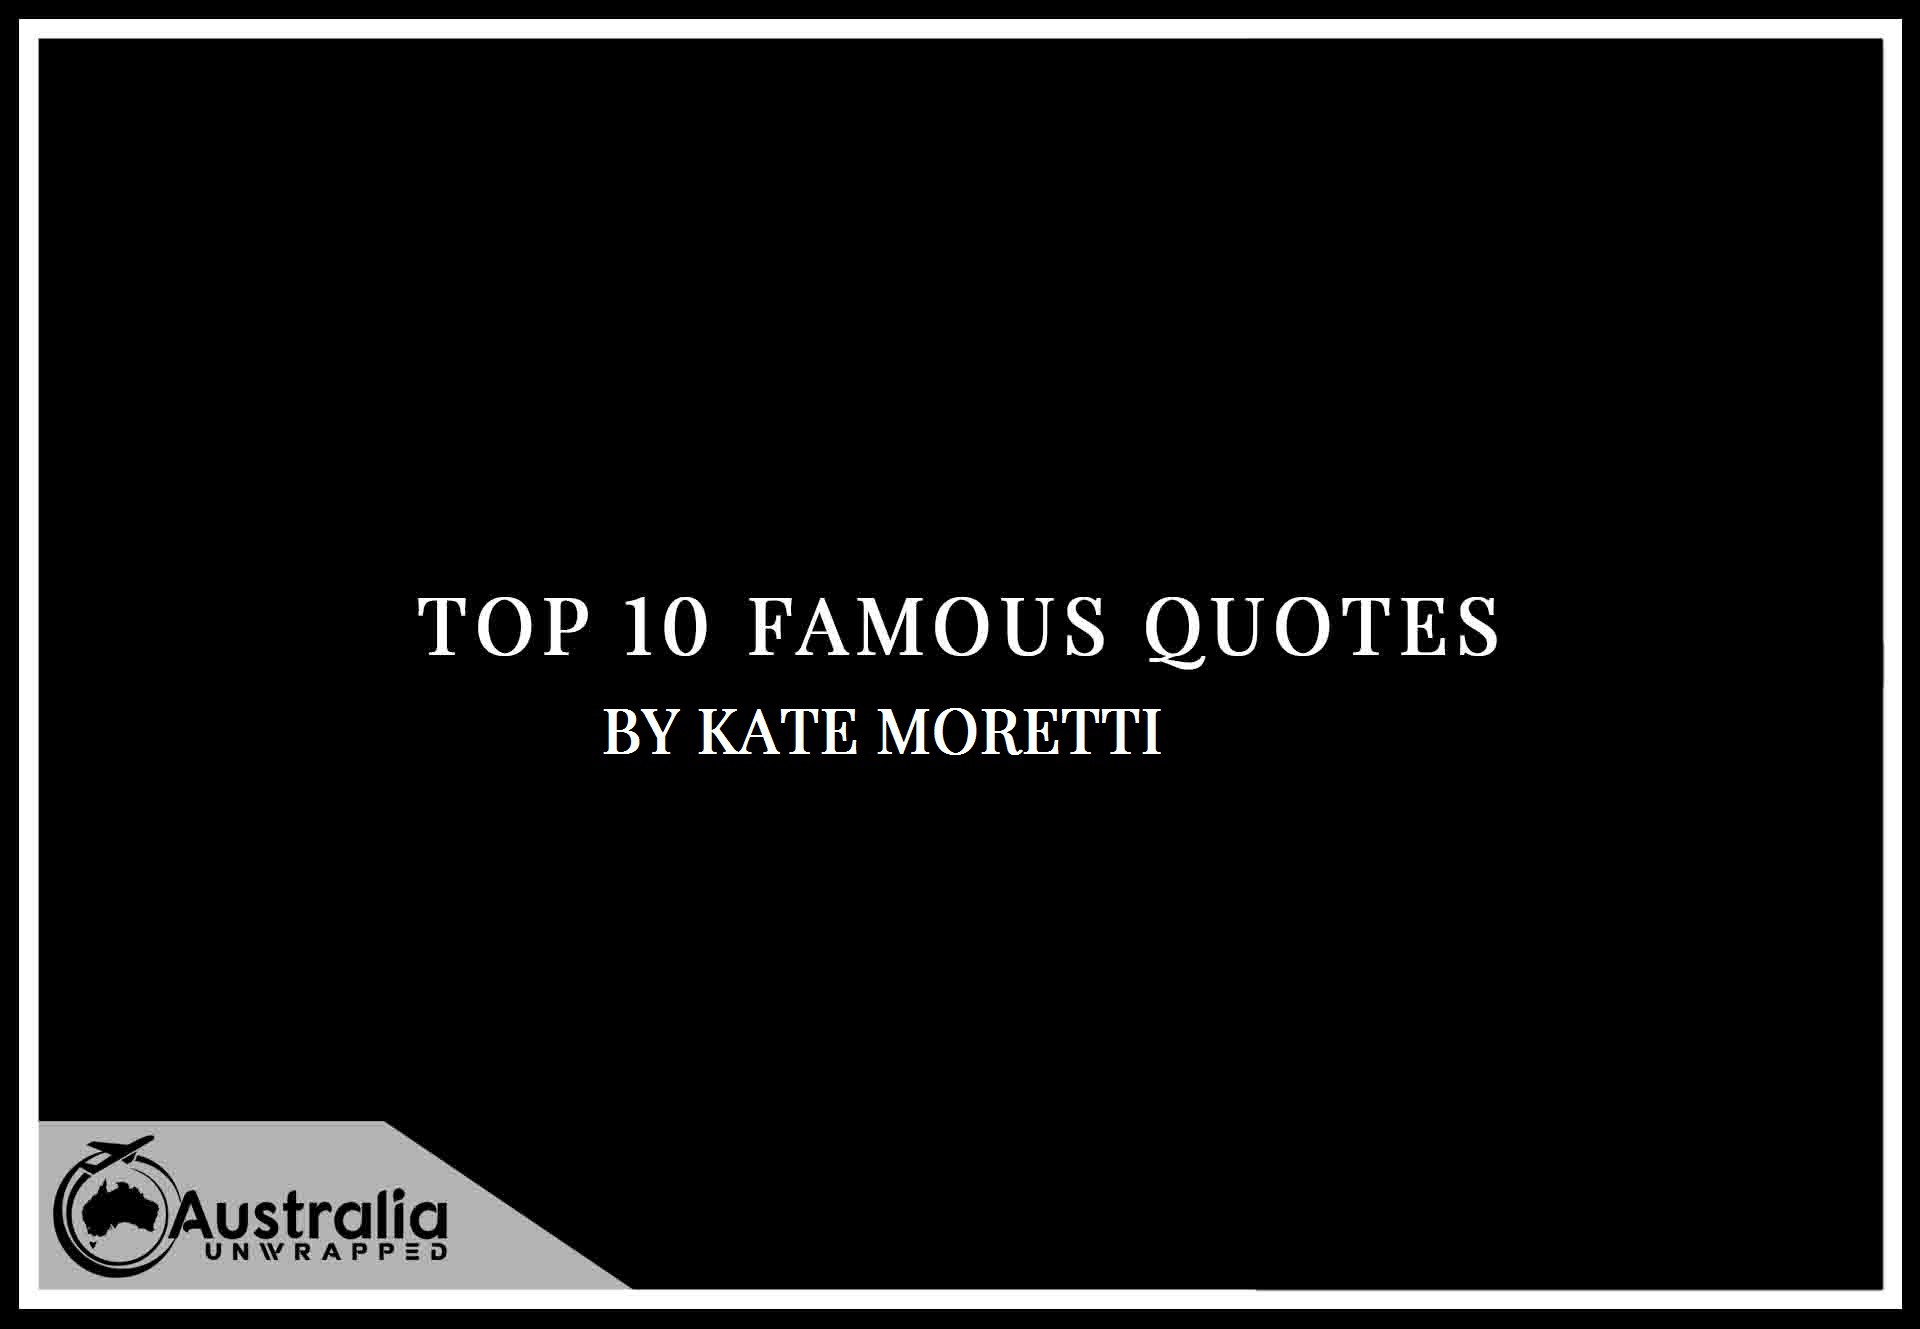 Kate Moretti's Top 10 Popular and Famous Quotes